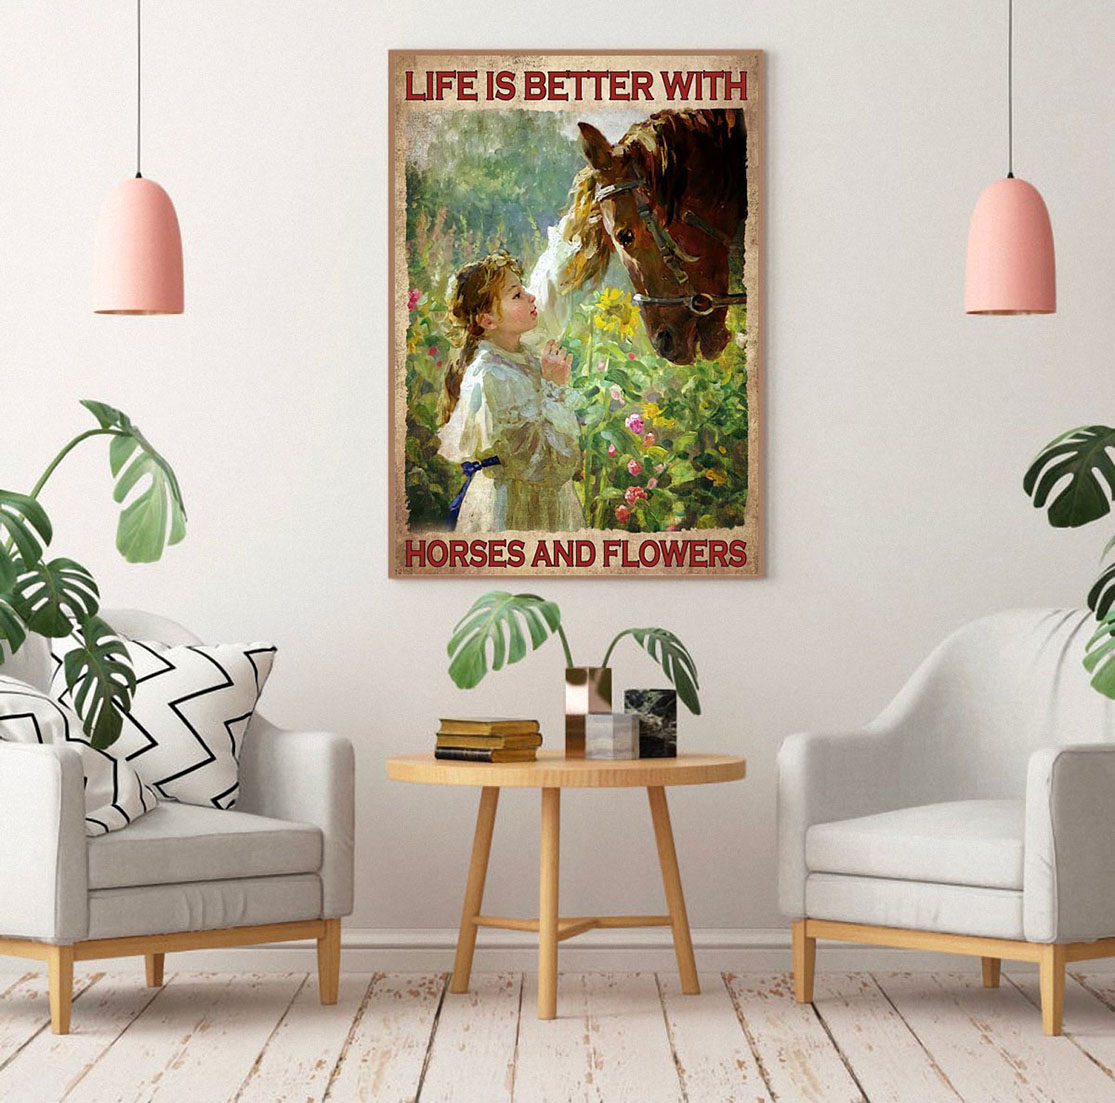 Life is better with horses and flowers poster